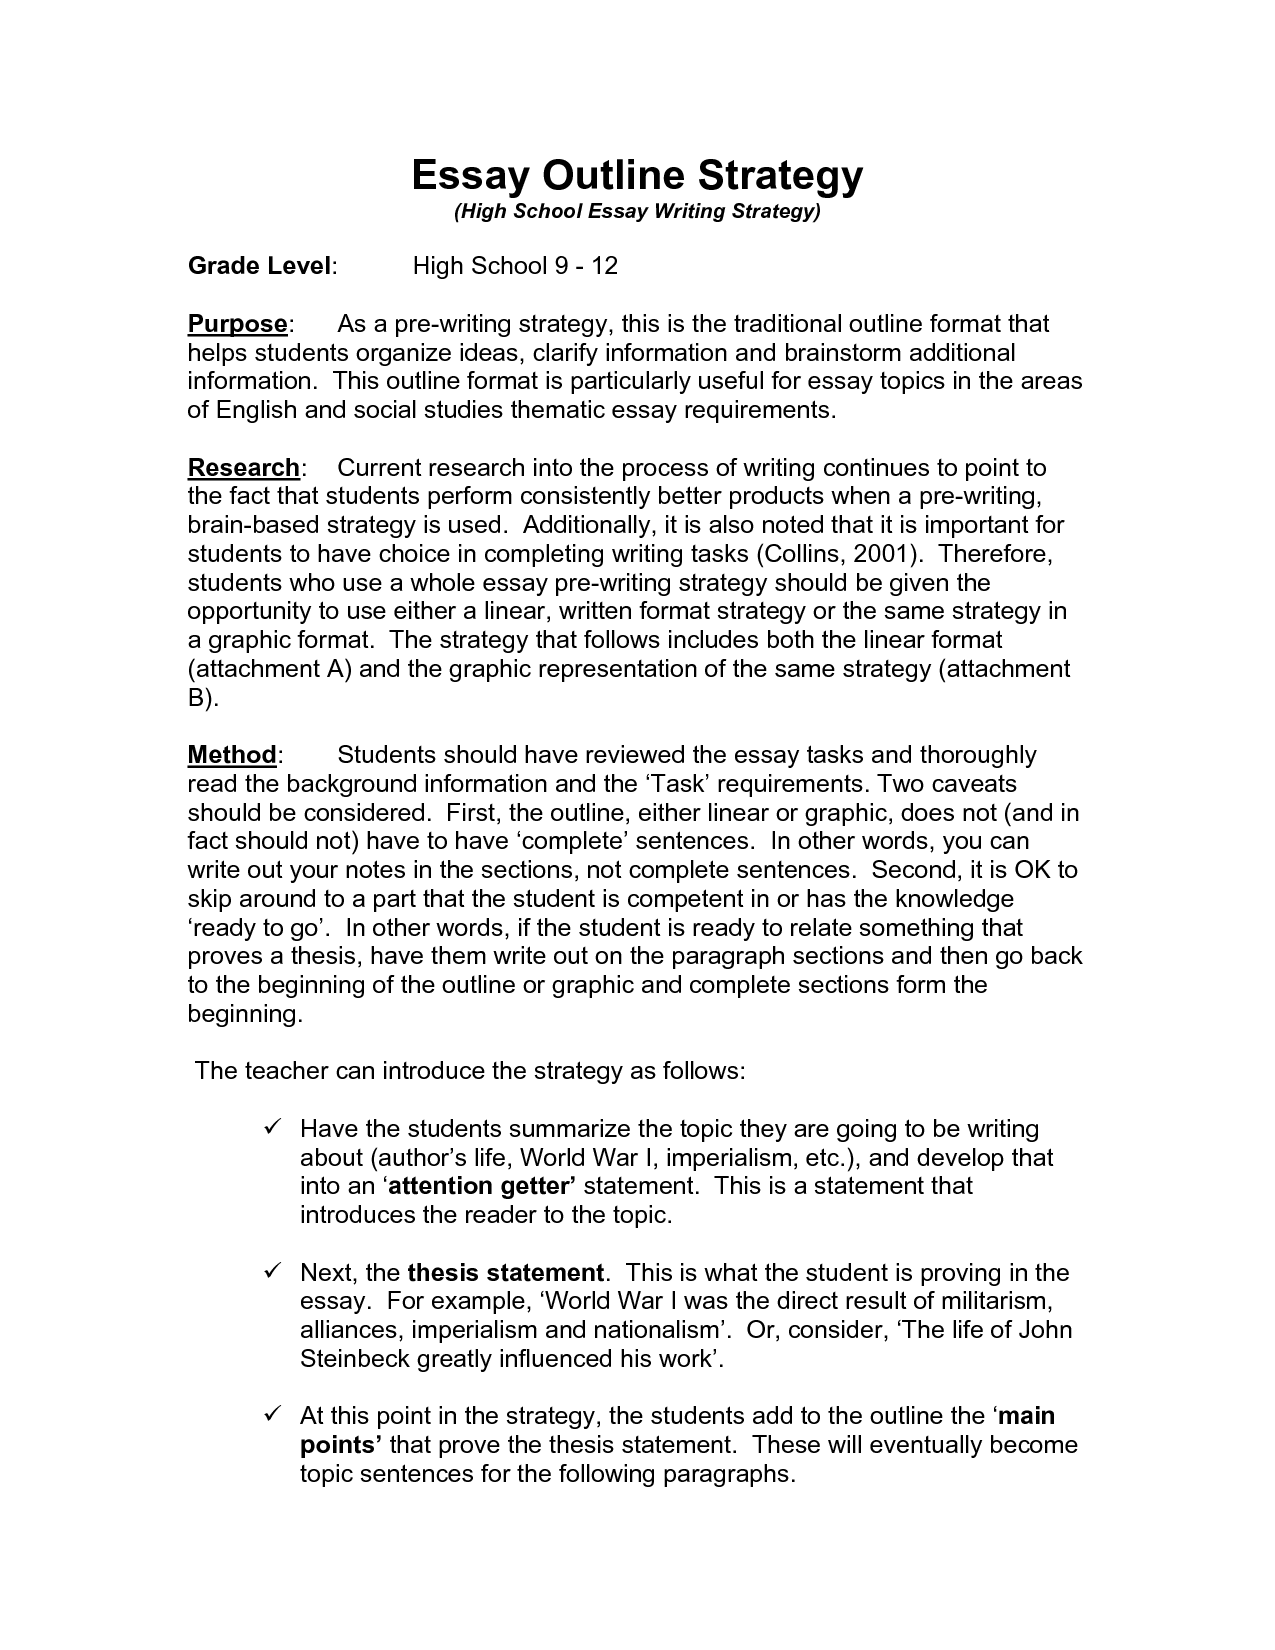 English Essay Writer  Elitamydearestco How To Write An English Essay Professional Writing Website  Research Papers Examples Essays also Example Of Proposal Essay  Reflective Essay Thesis Statement Examples